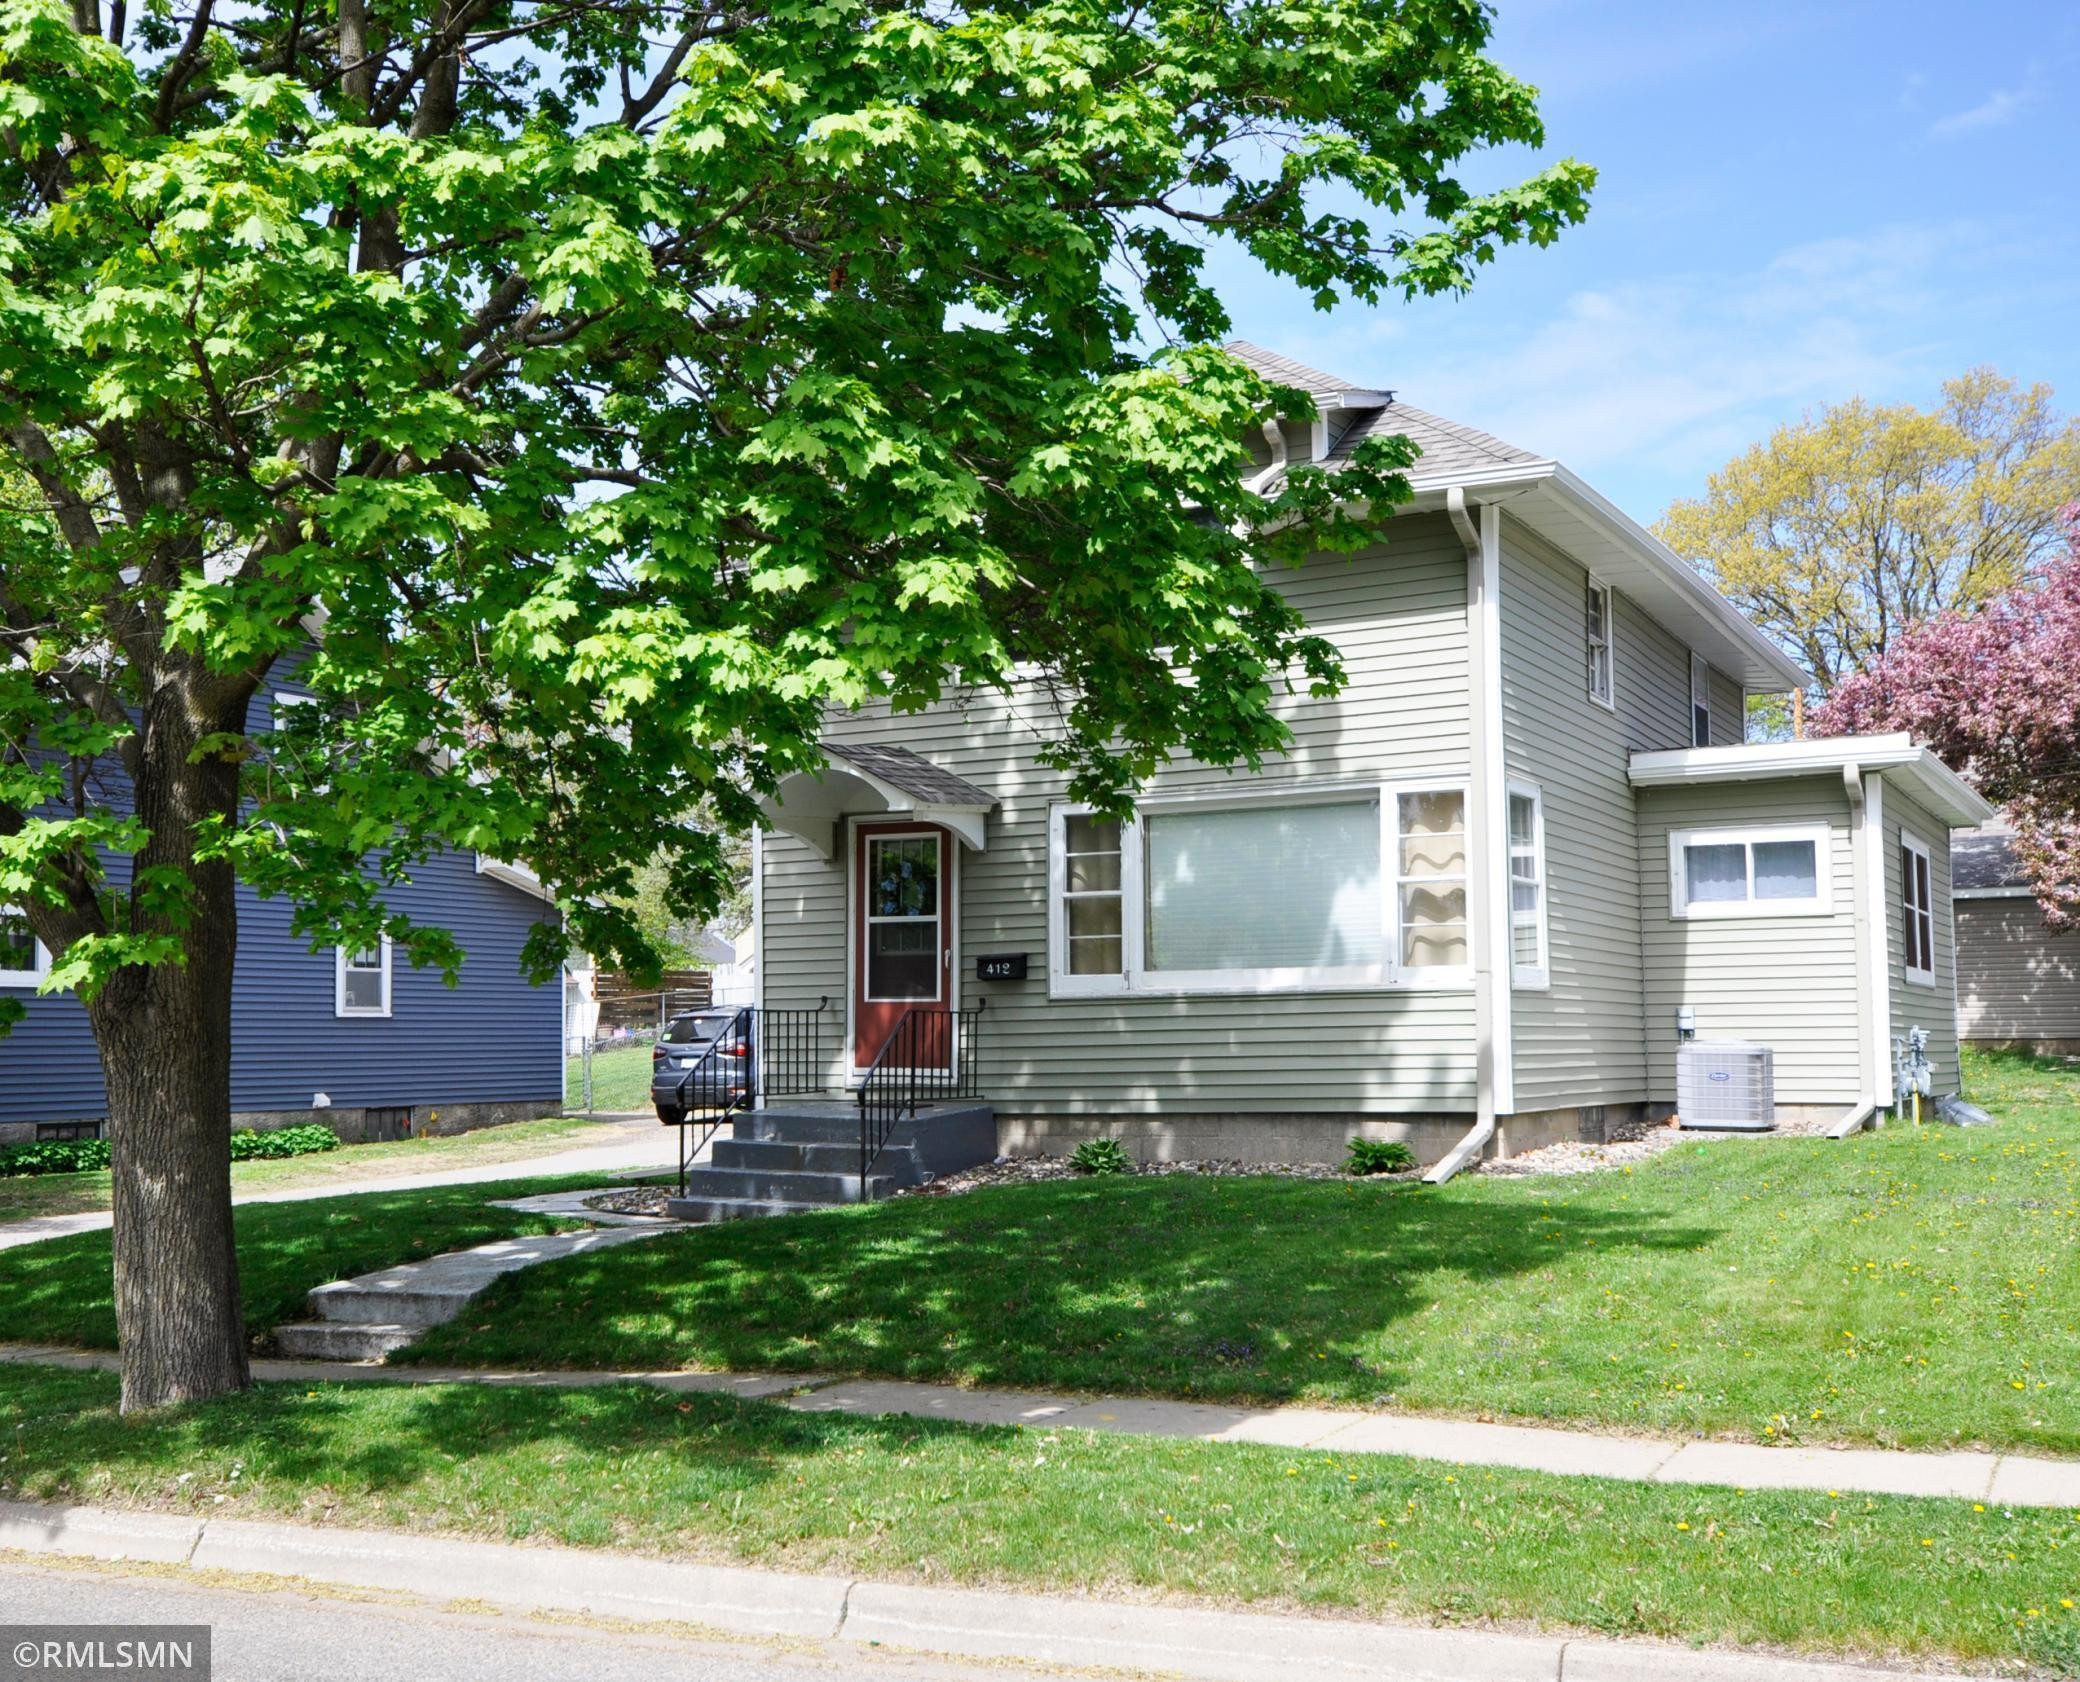 412 10th Street, Red Wing, MN 55066